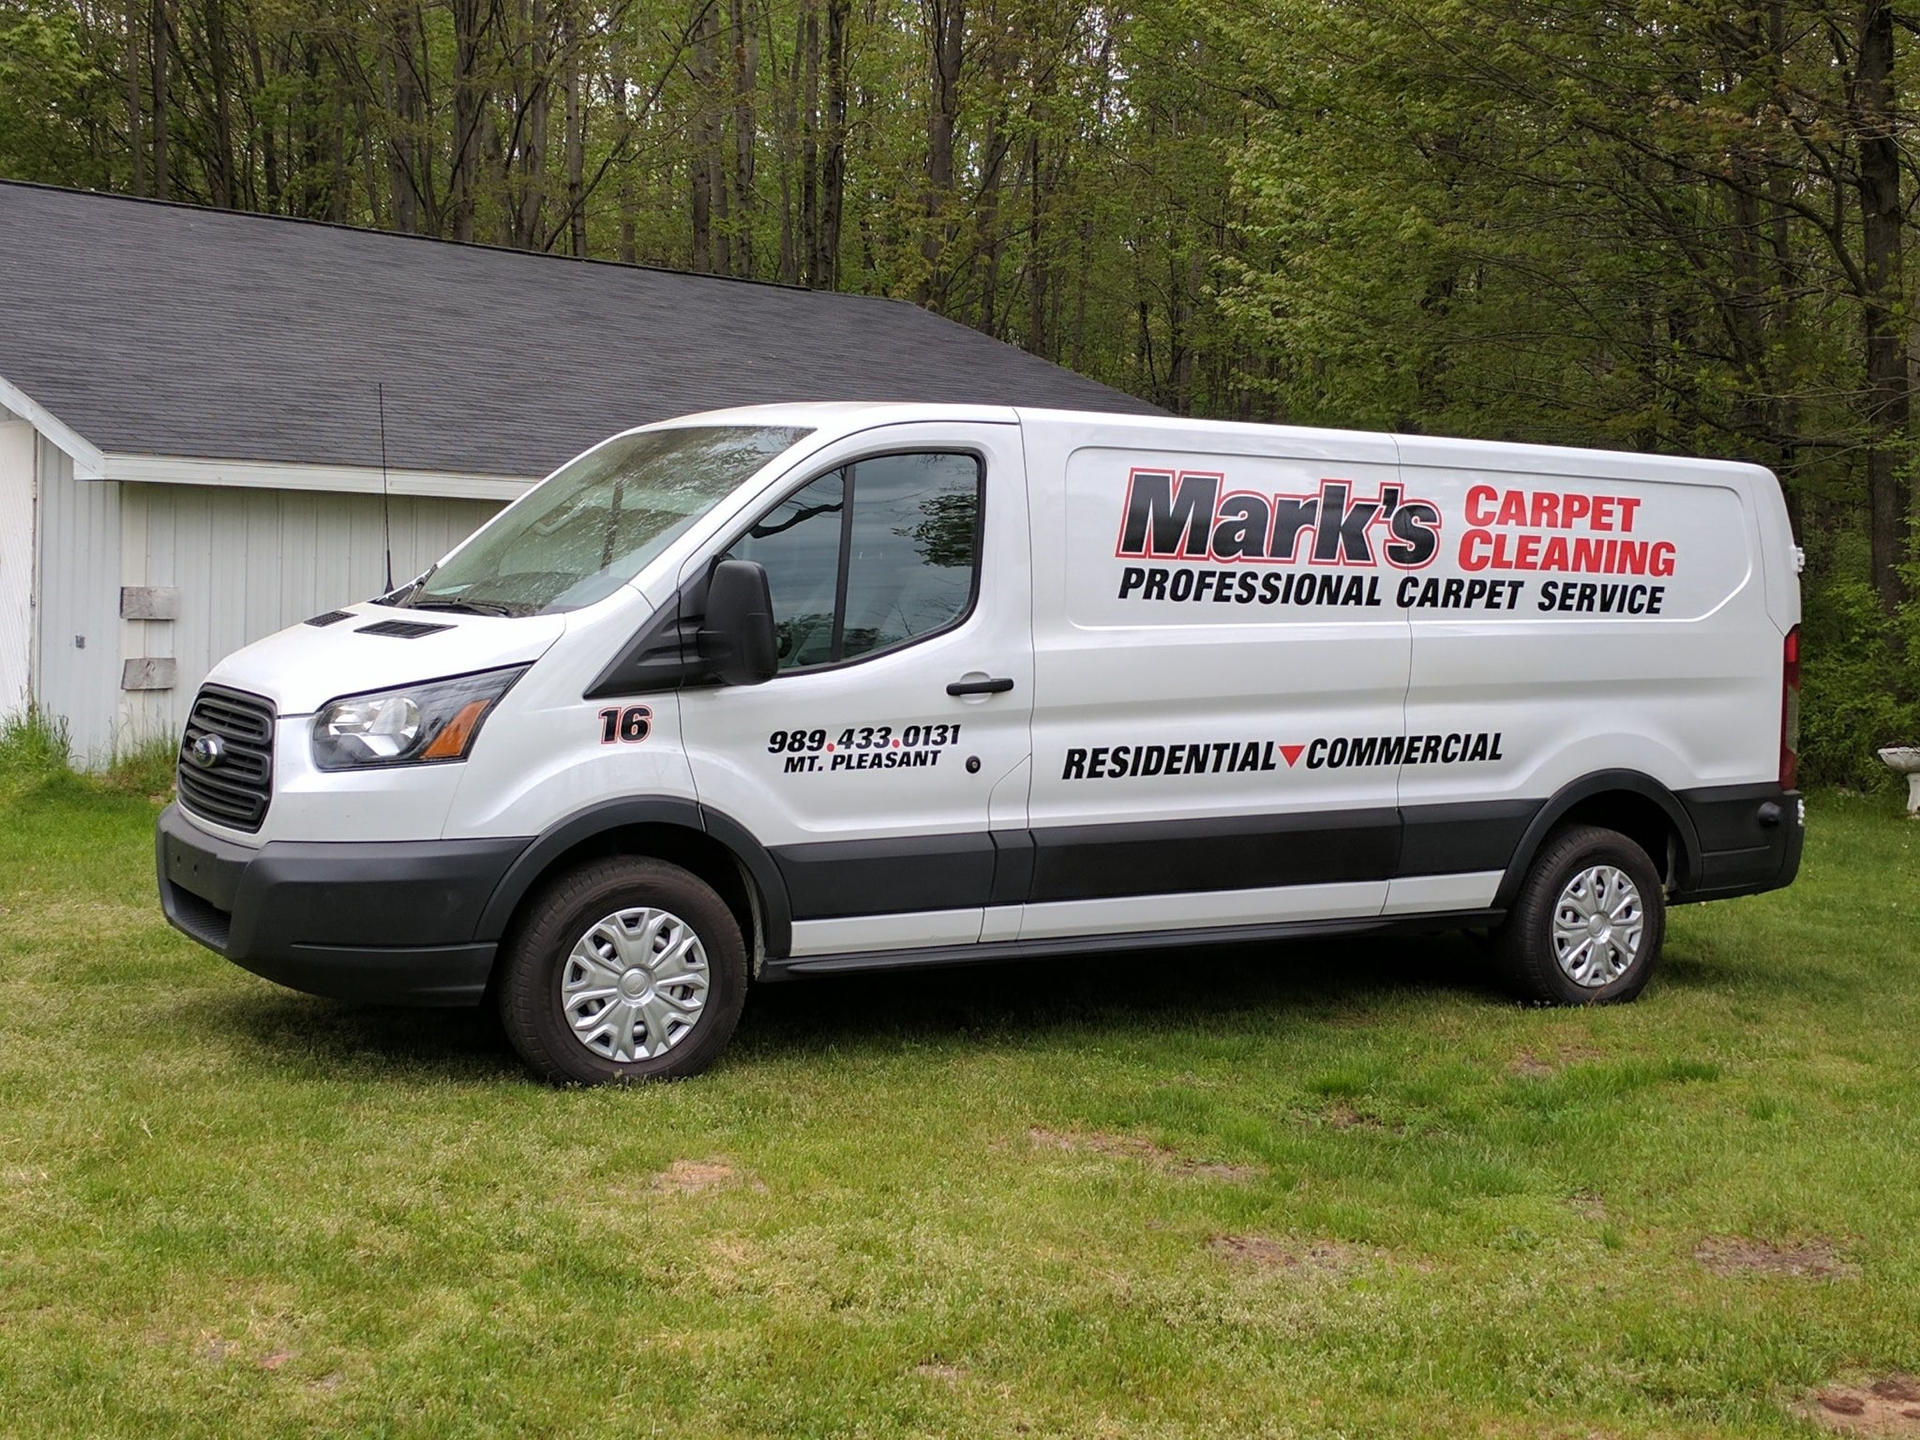 Mark's Carpet Cleaning